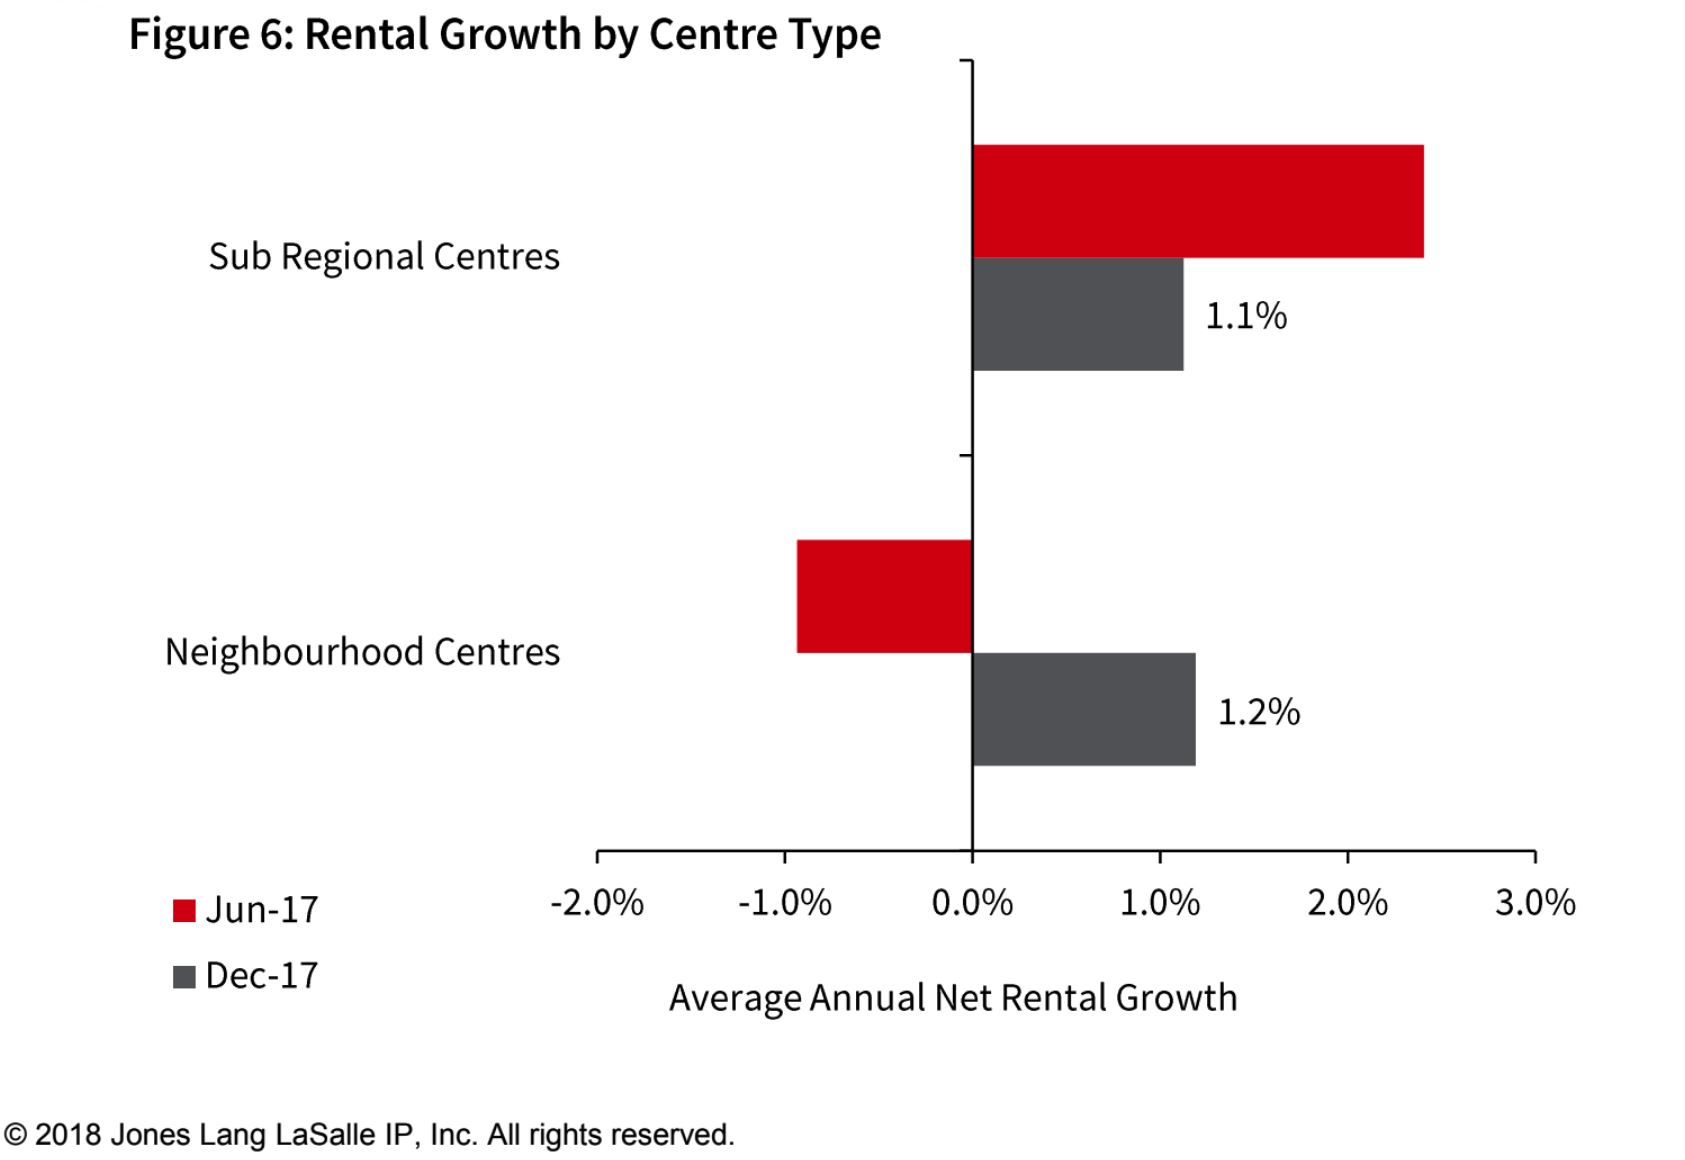 Total shopping centre MAT (Moving Annual Turnover) growth improved marginally but remains subdued. Sub-regional centres recorded growth of 1.0% in the year to December and just 0.2% in neighbourhood centres.